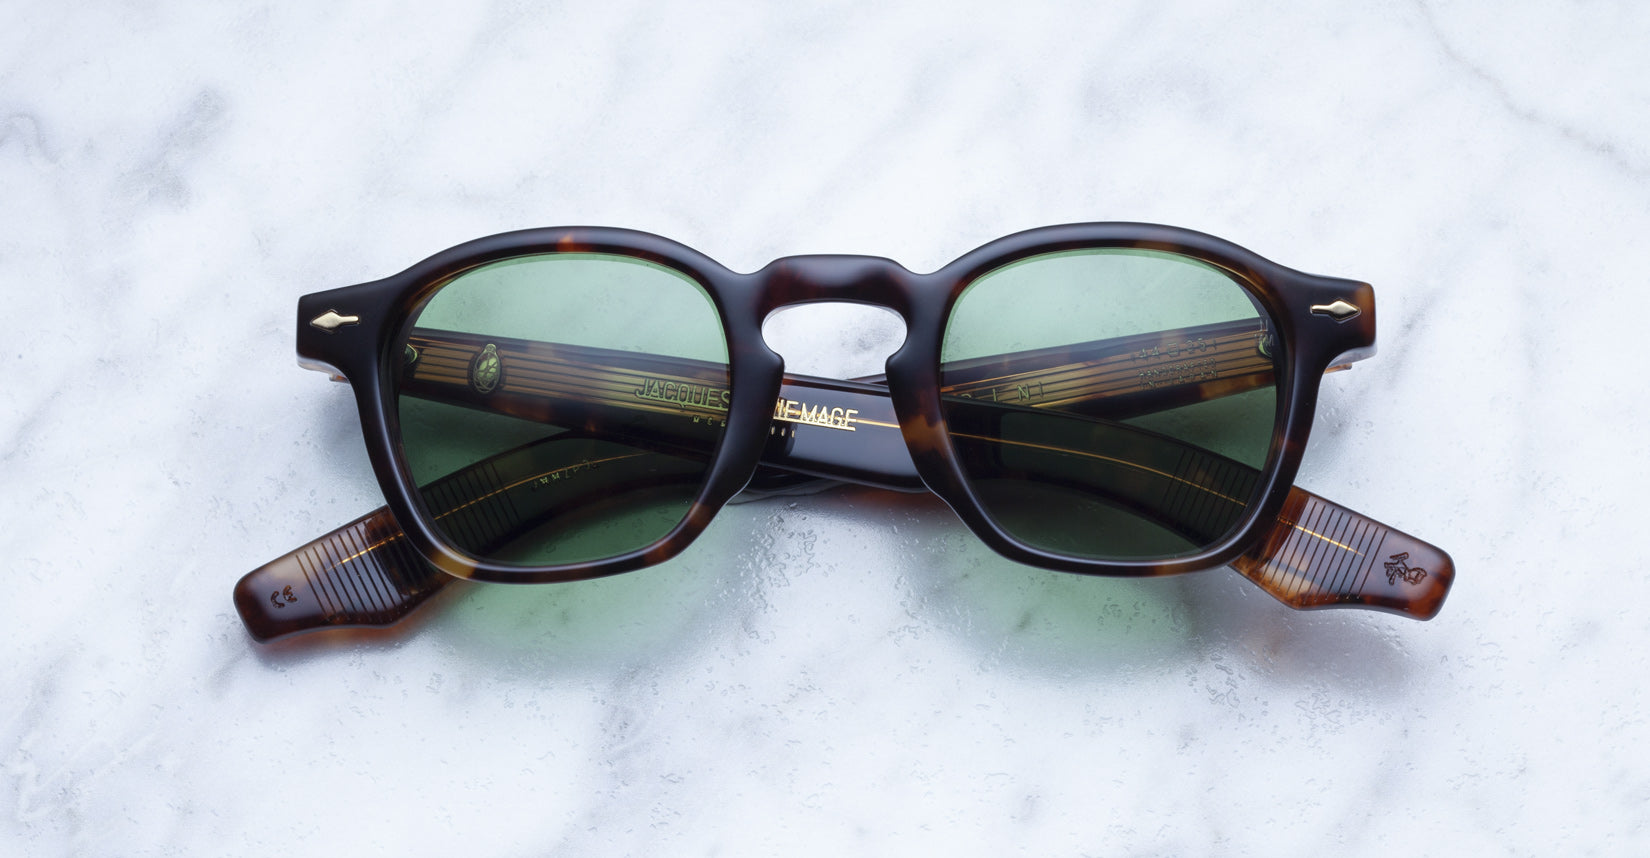 Jacques Marie Mage Zephirin Havana4 Limited Edition sunglasses